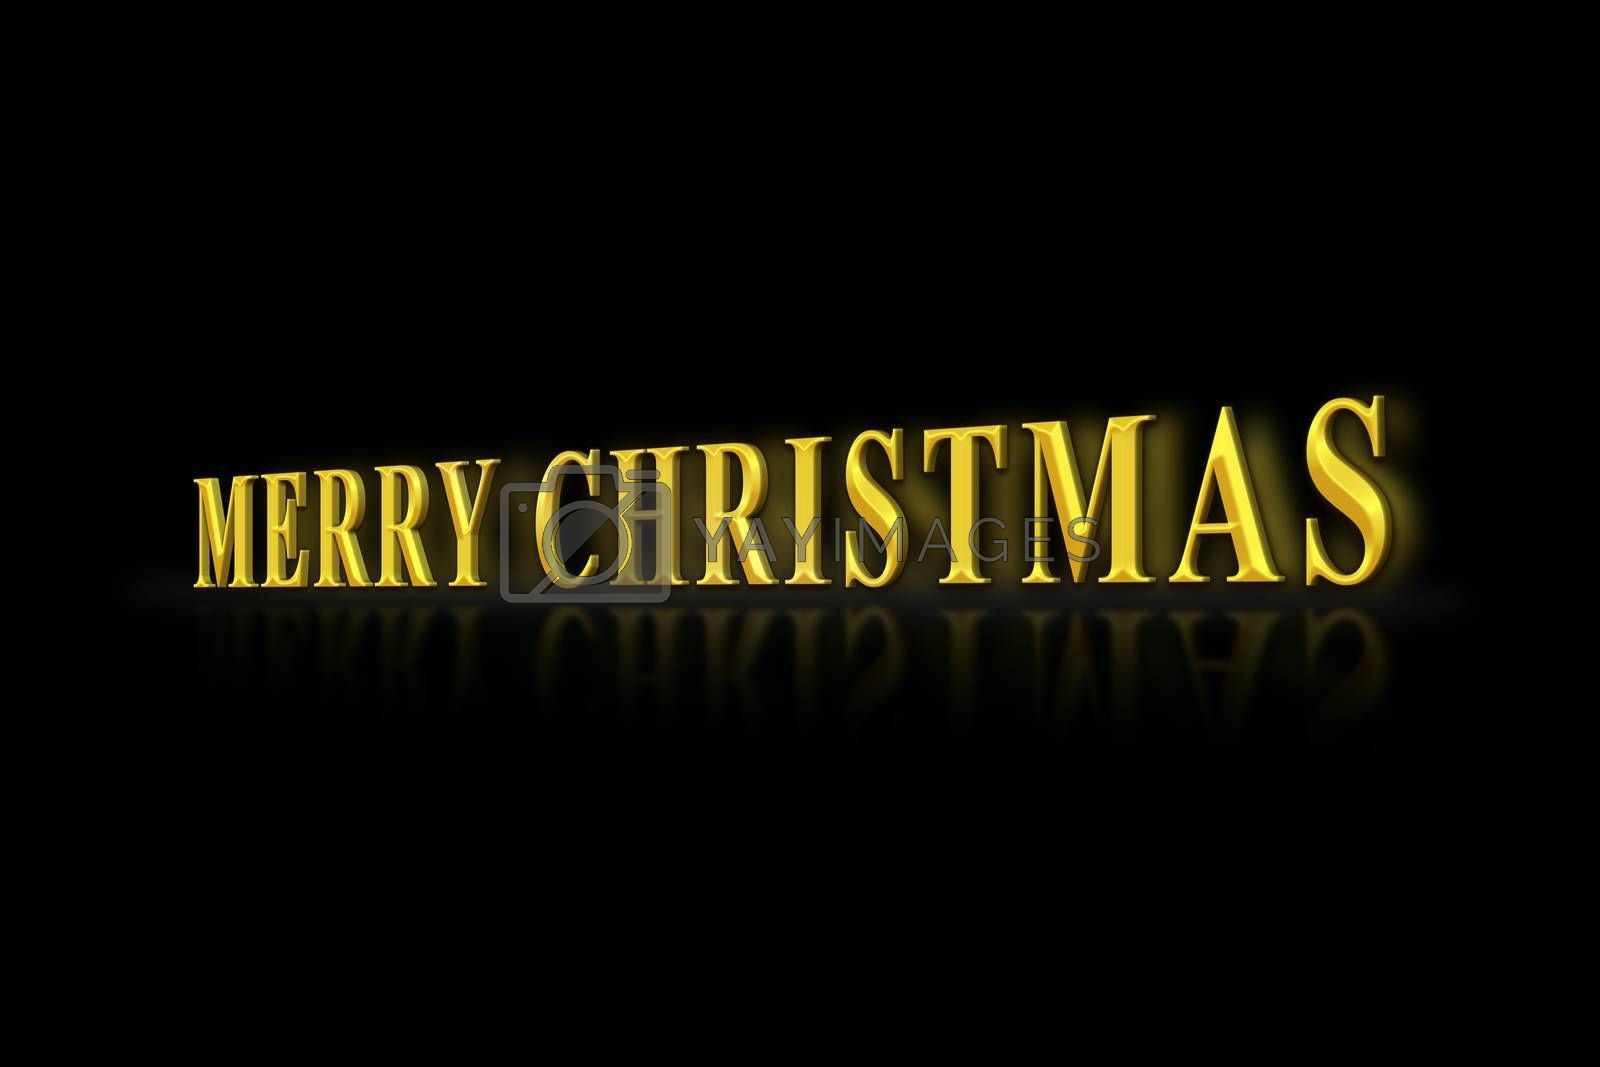 The inscription merry CHRISTMAS with Golden letters on a black background